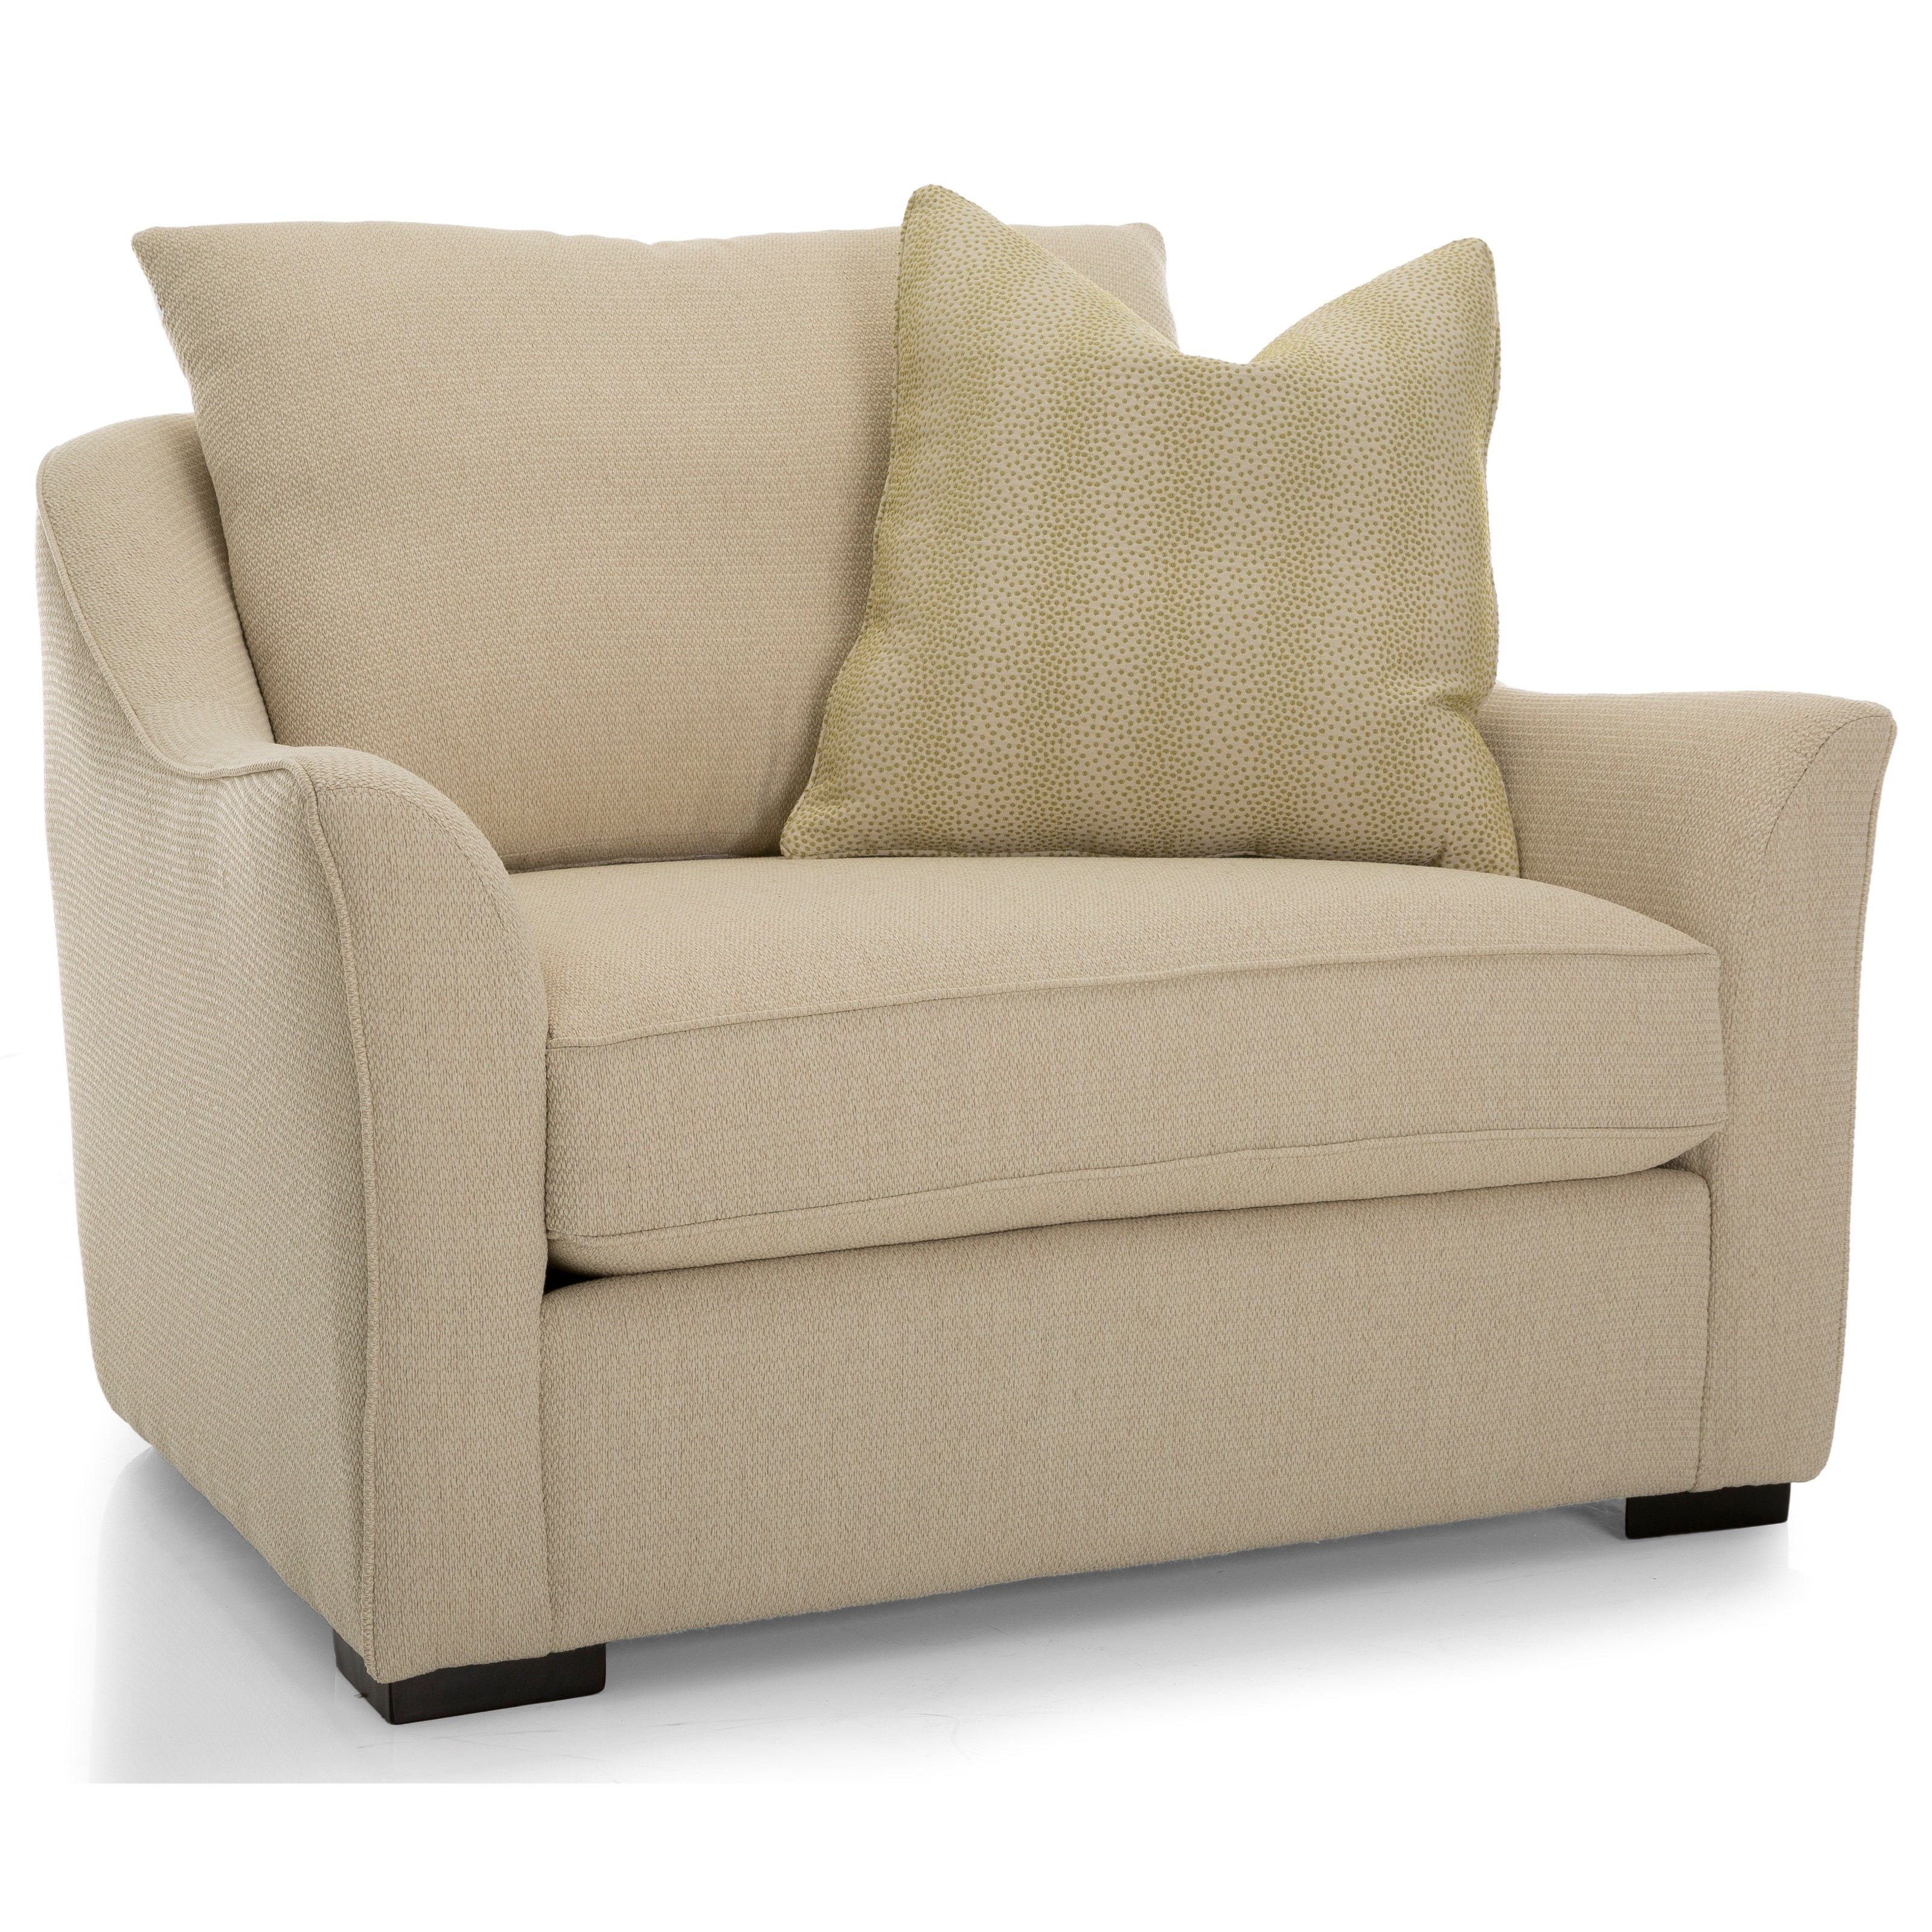 Hazel Chair by Taelor Designs at Bennett's Furniture and Mattresses